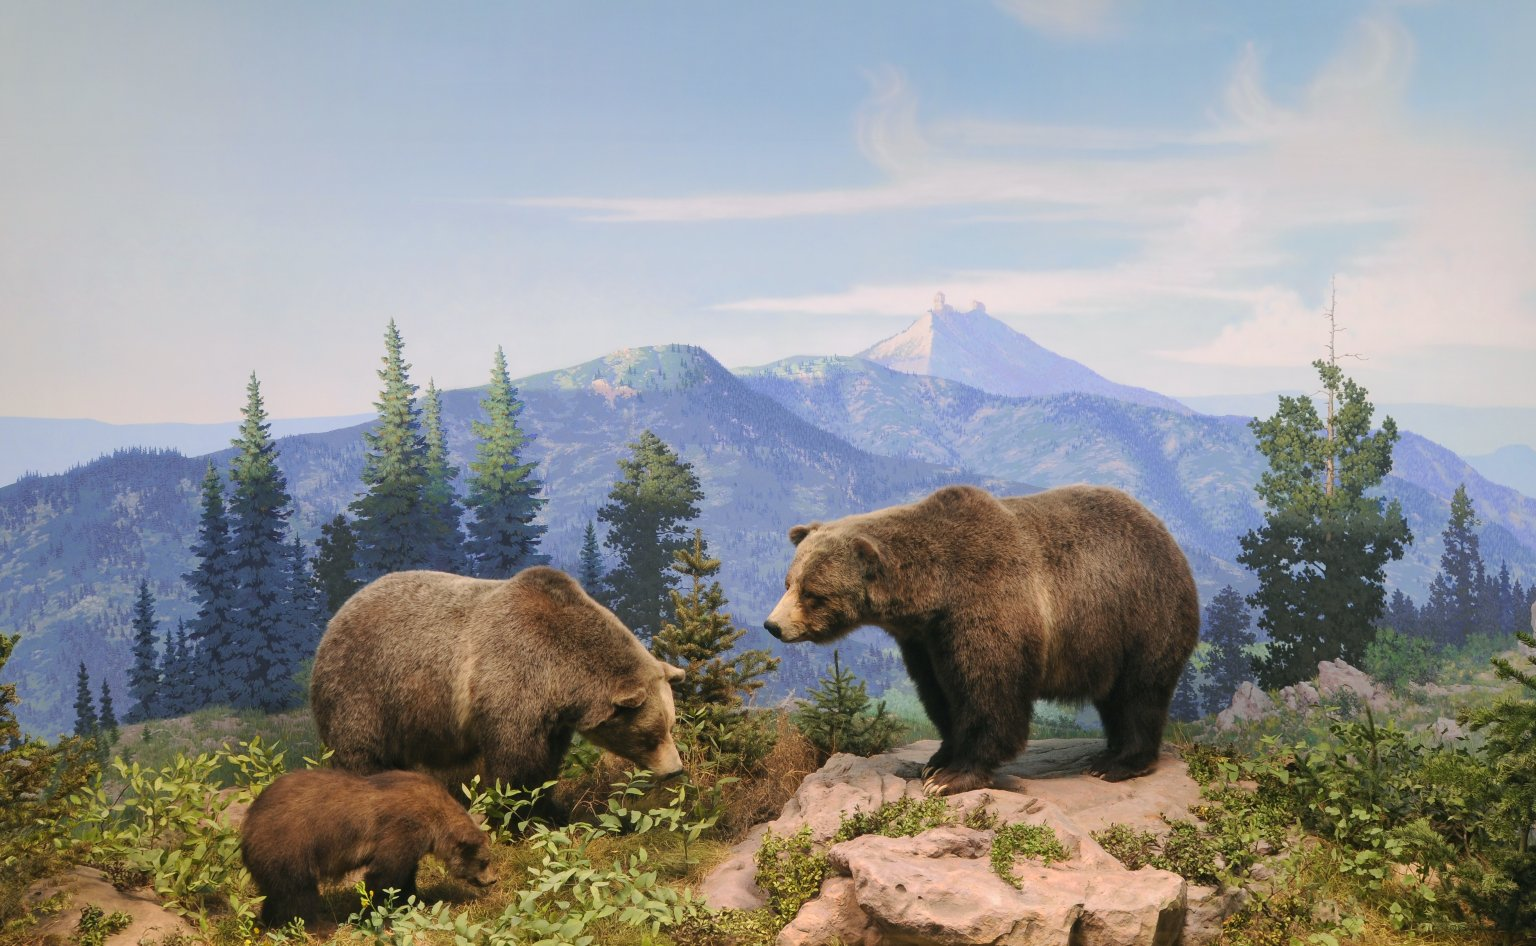 Colorado Grizzly BearGroup Diorama